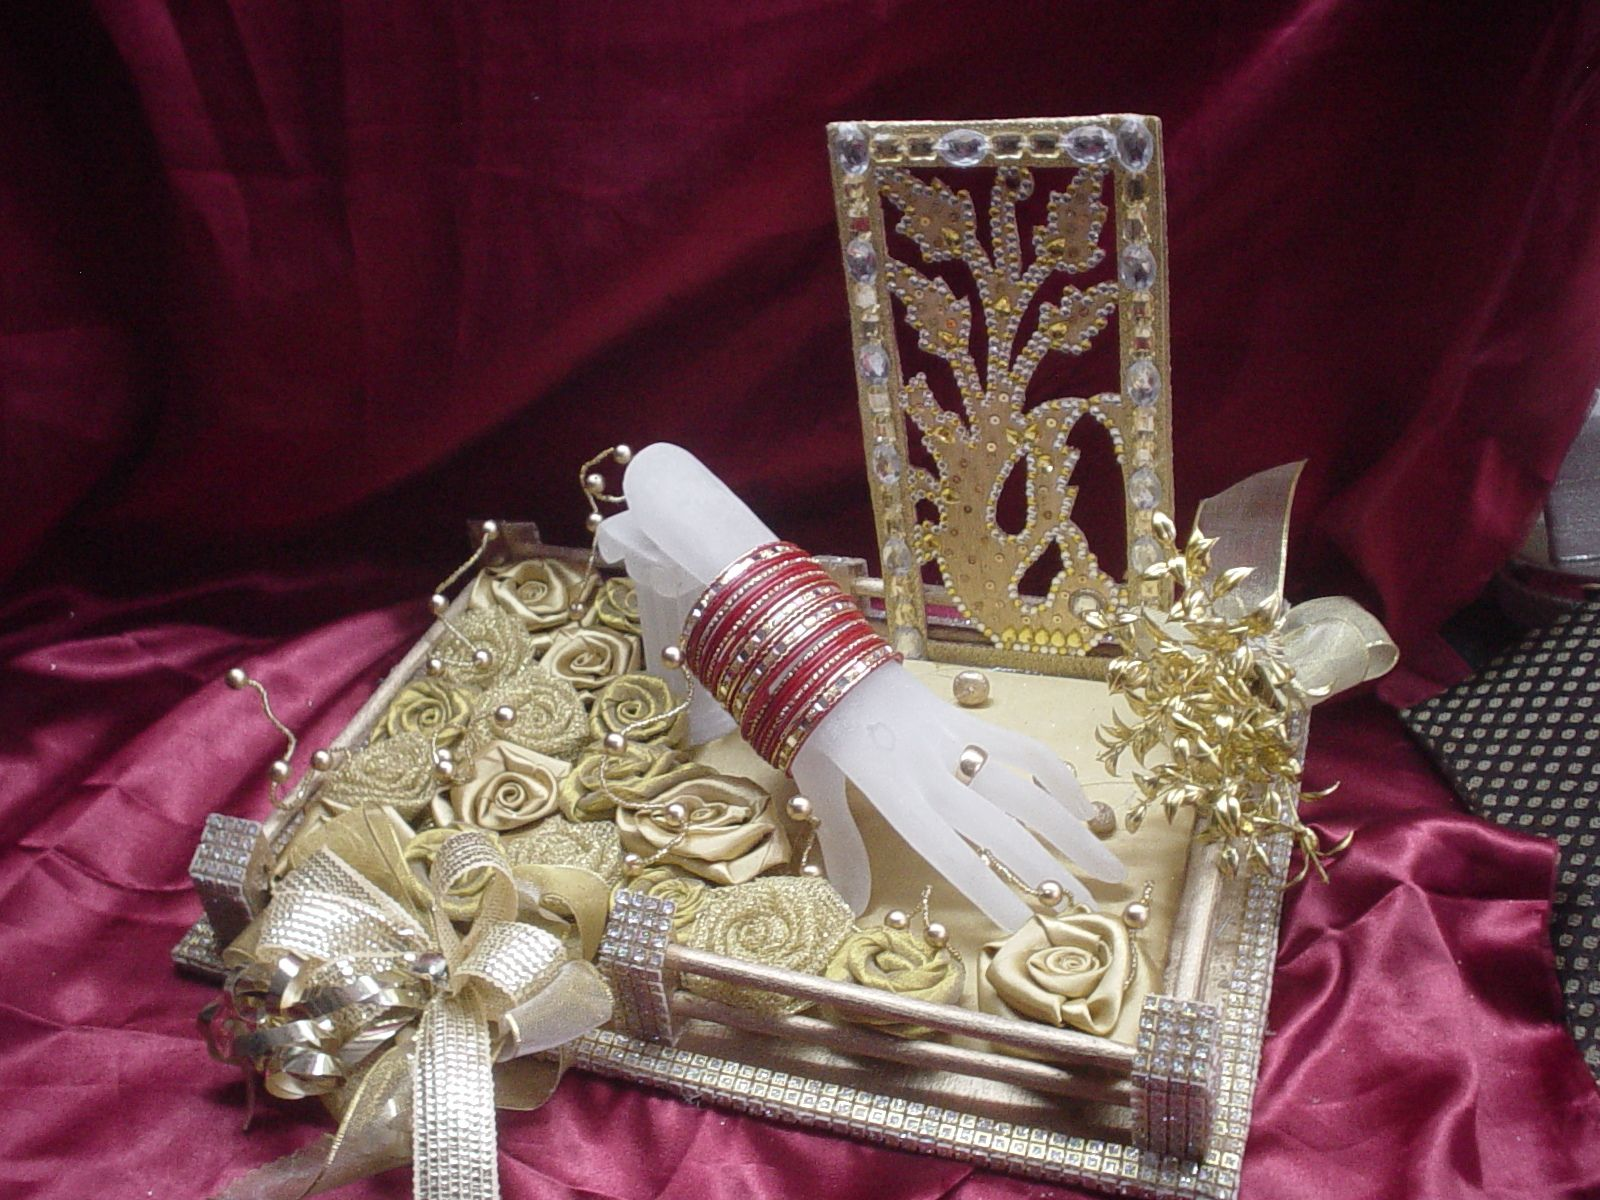 Indian Wedding Gift Decoration : tray of wedding packing wedding in u.k wedding in usa wedding ...